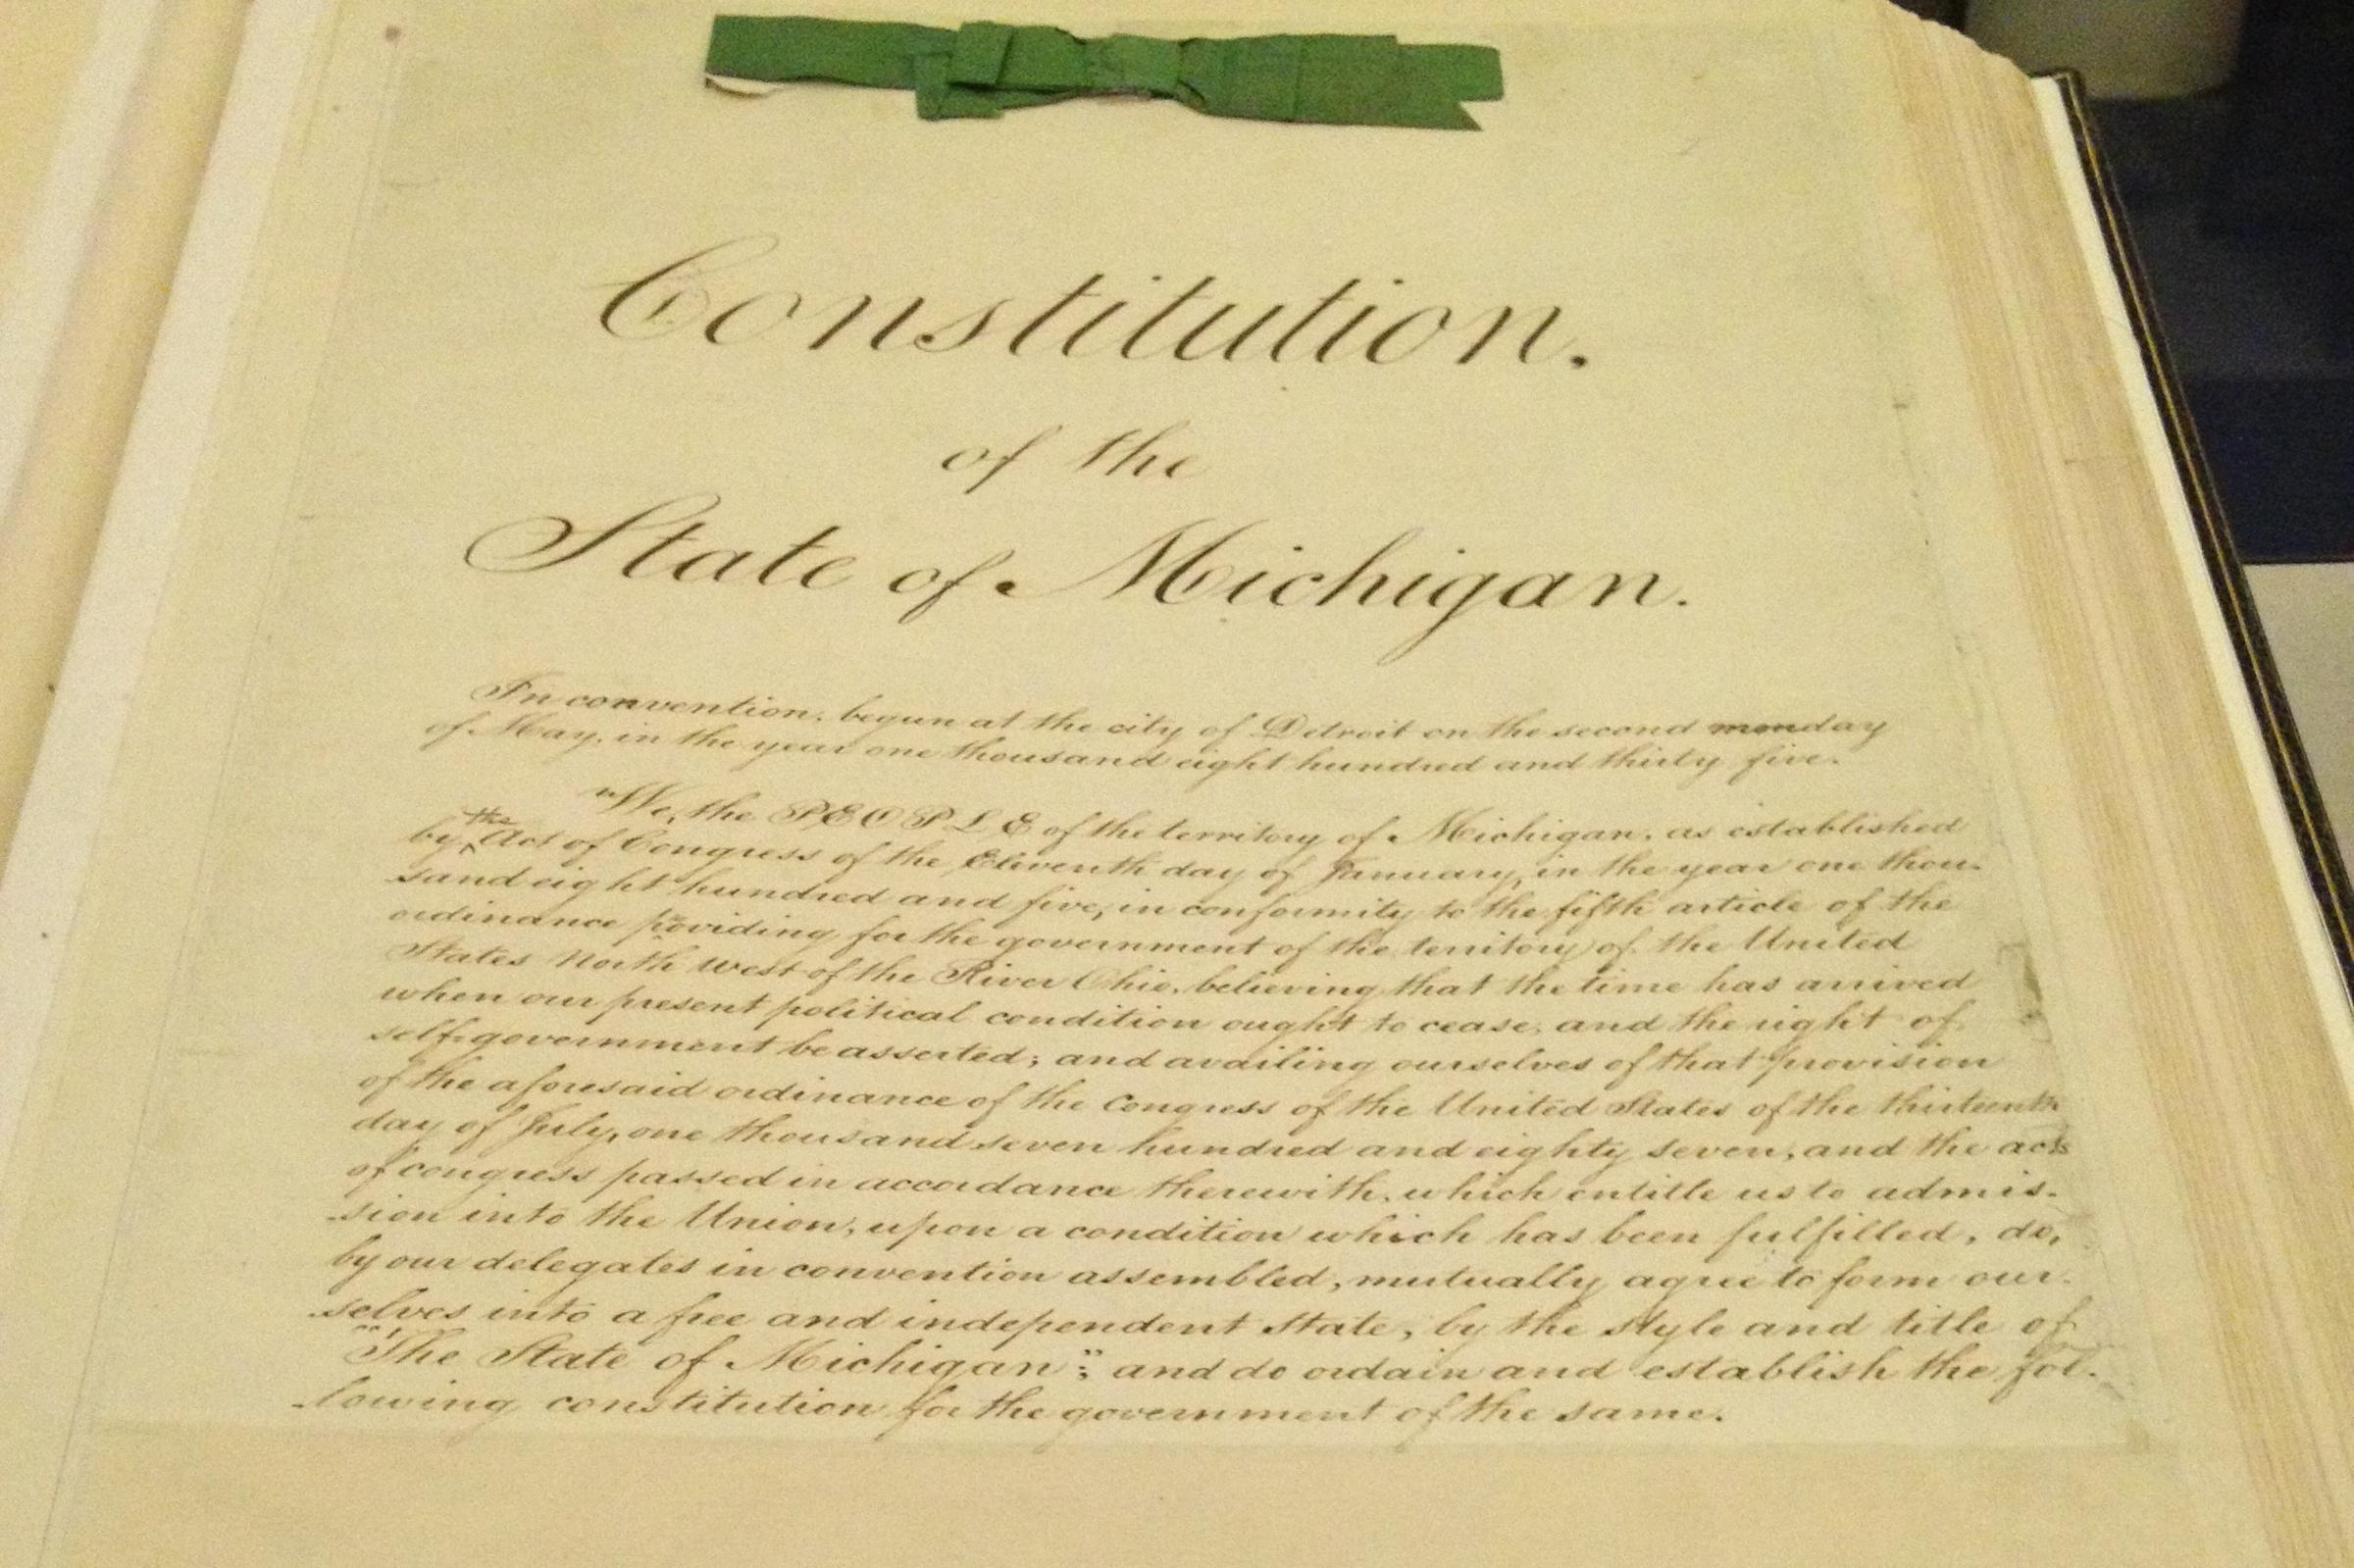 Michigan's 1835 constitution was drafted and approved inside the capitol in Detroit